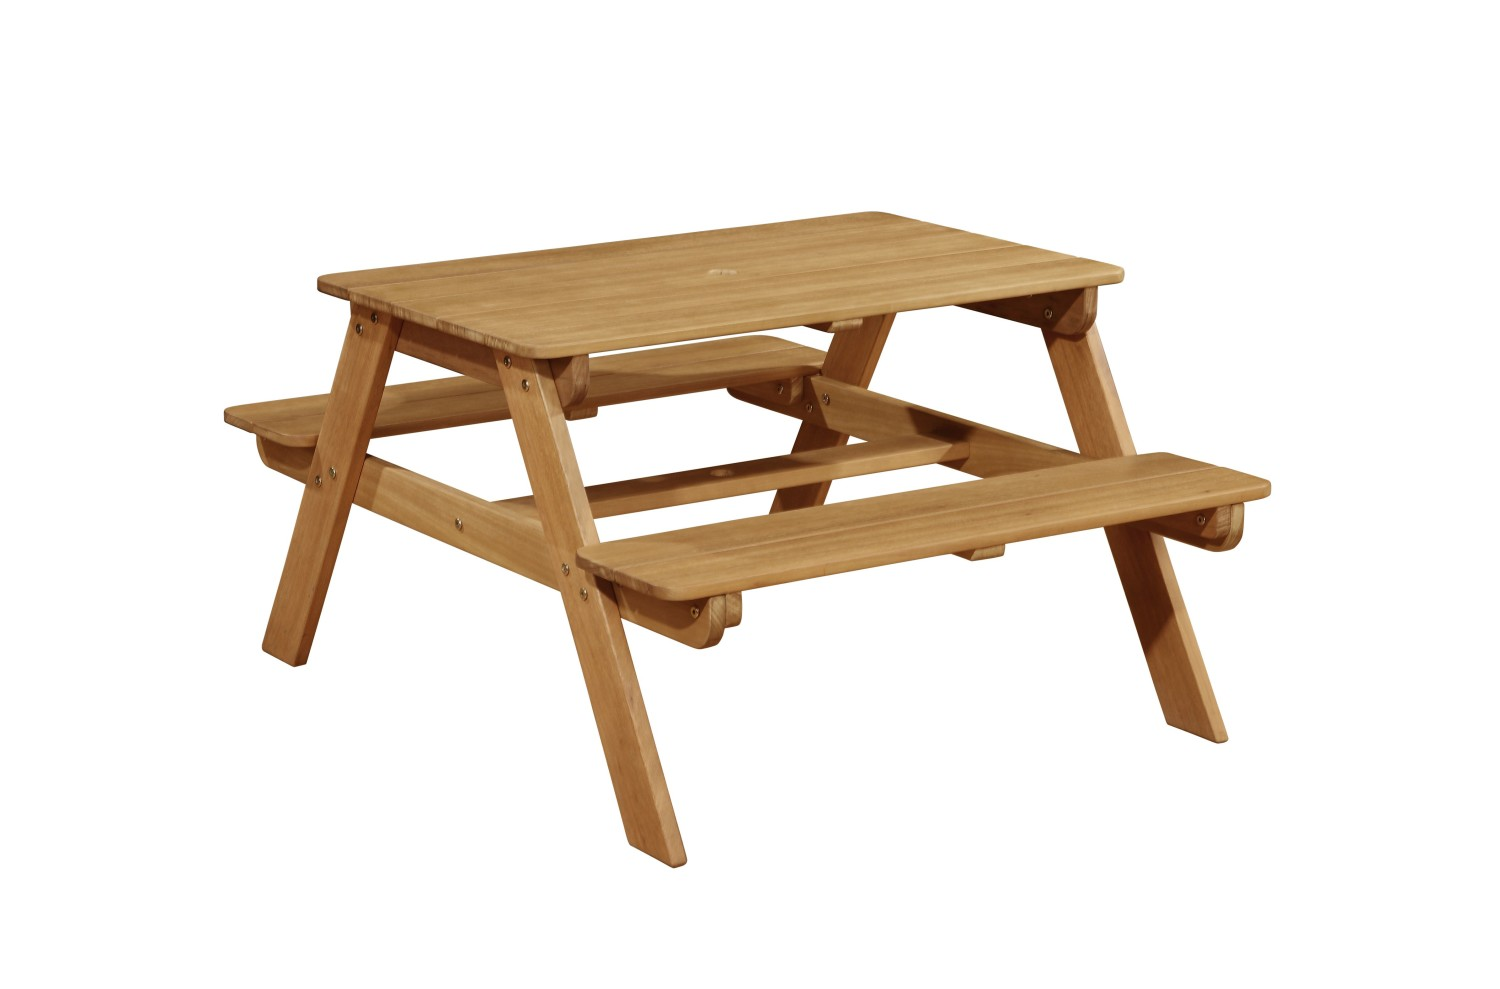 An image of Helios Wooden Picnic Table